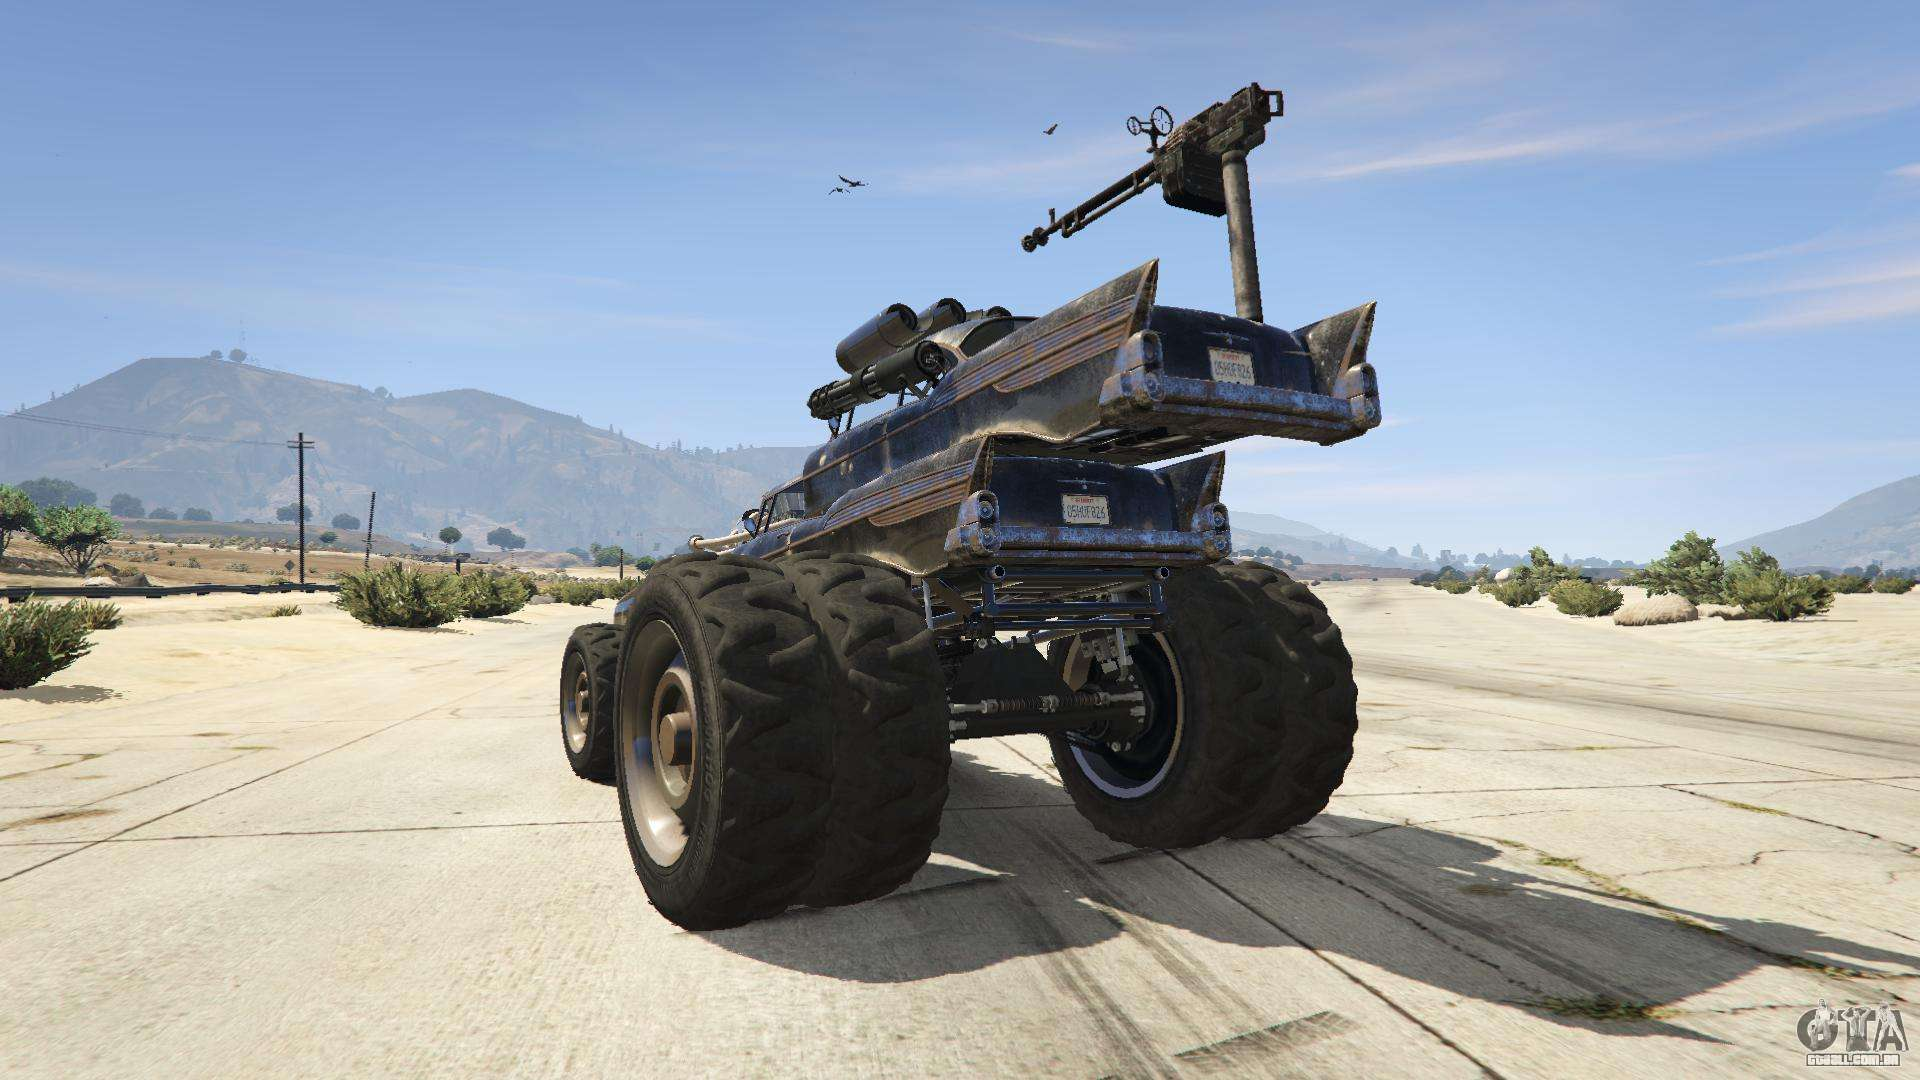 mad max car on gta 5 location  mad  free engine image for